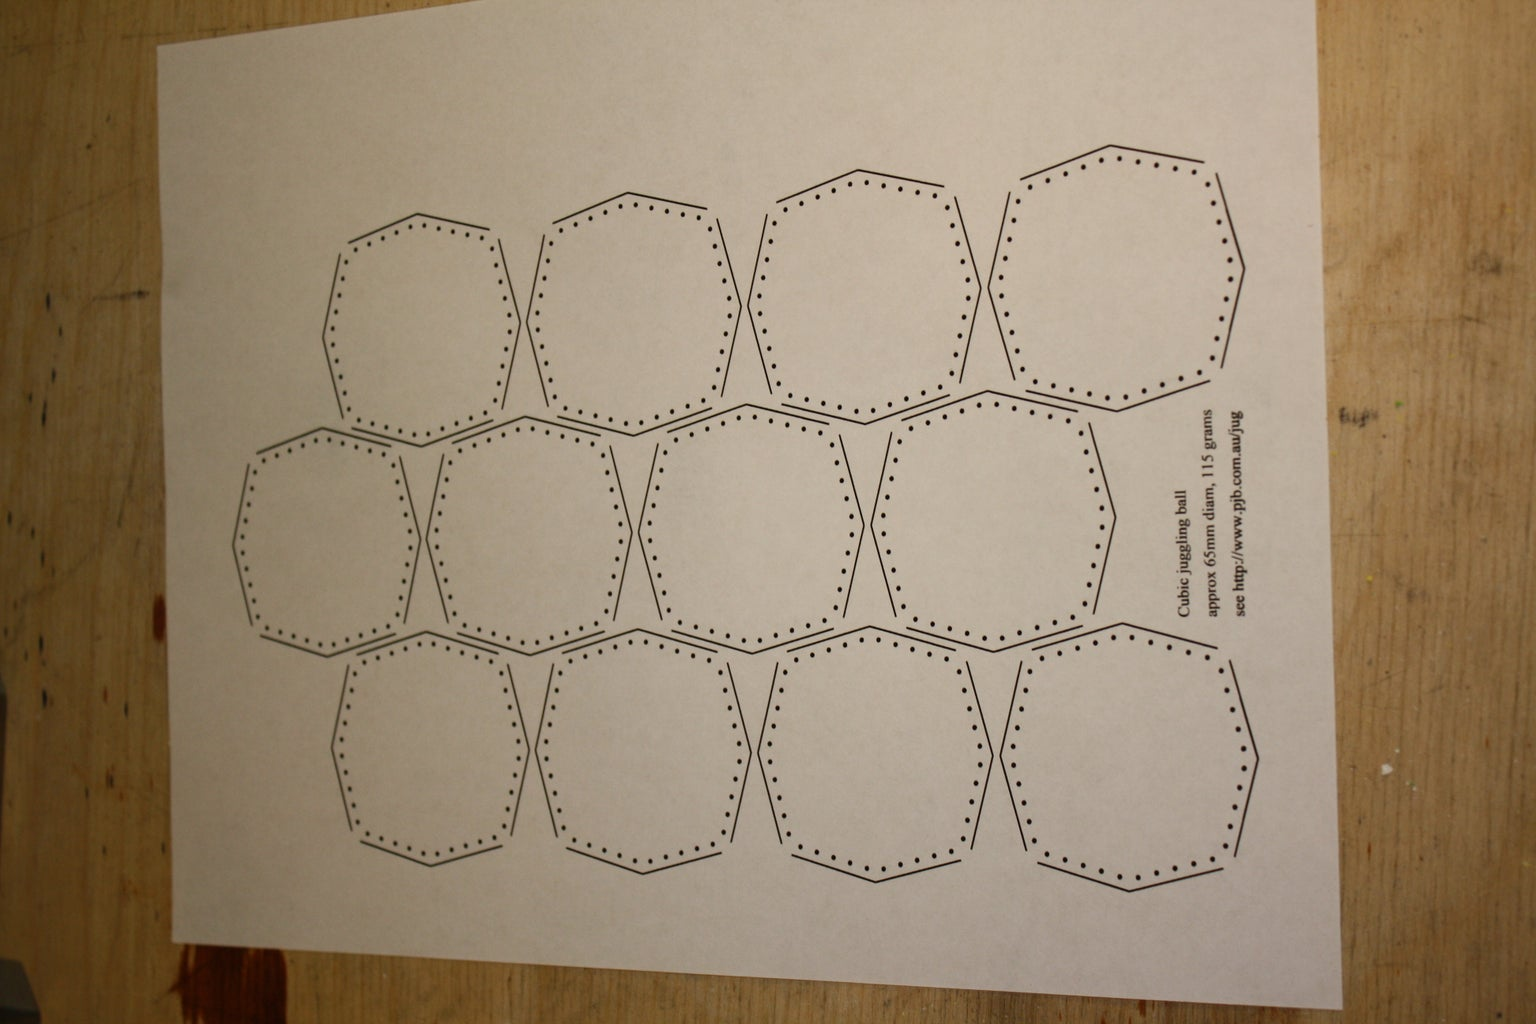 Print and Cut Out the Pattern